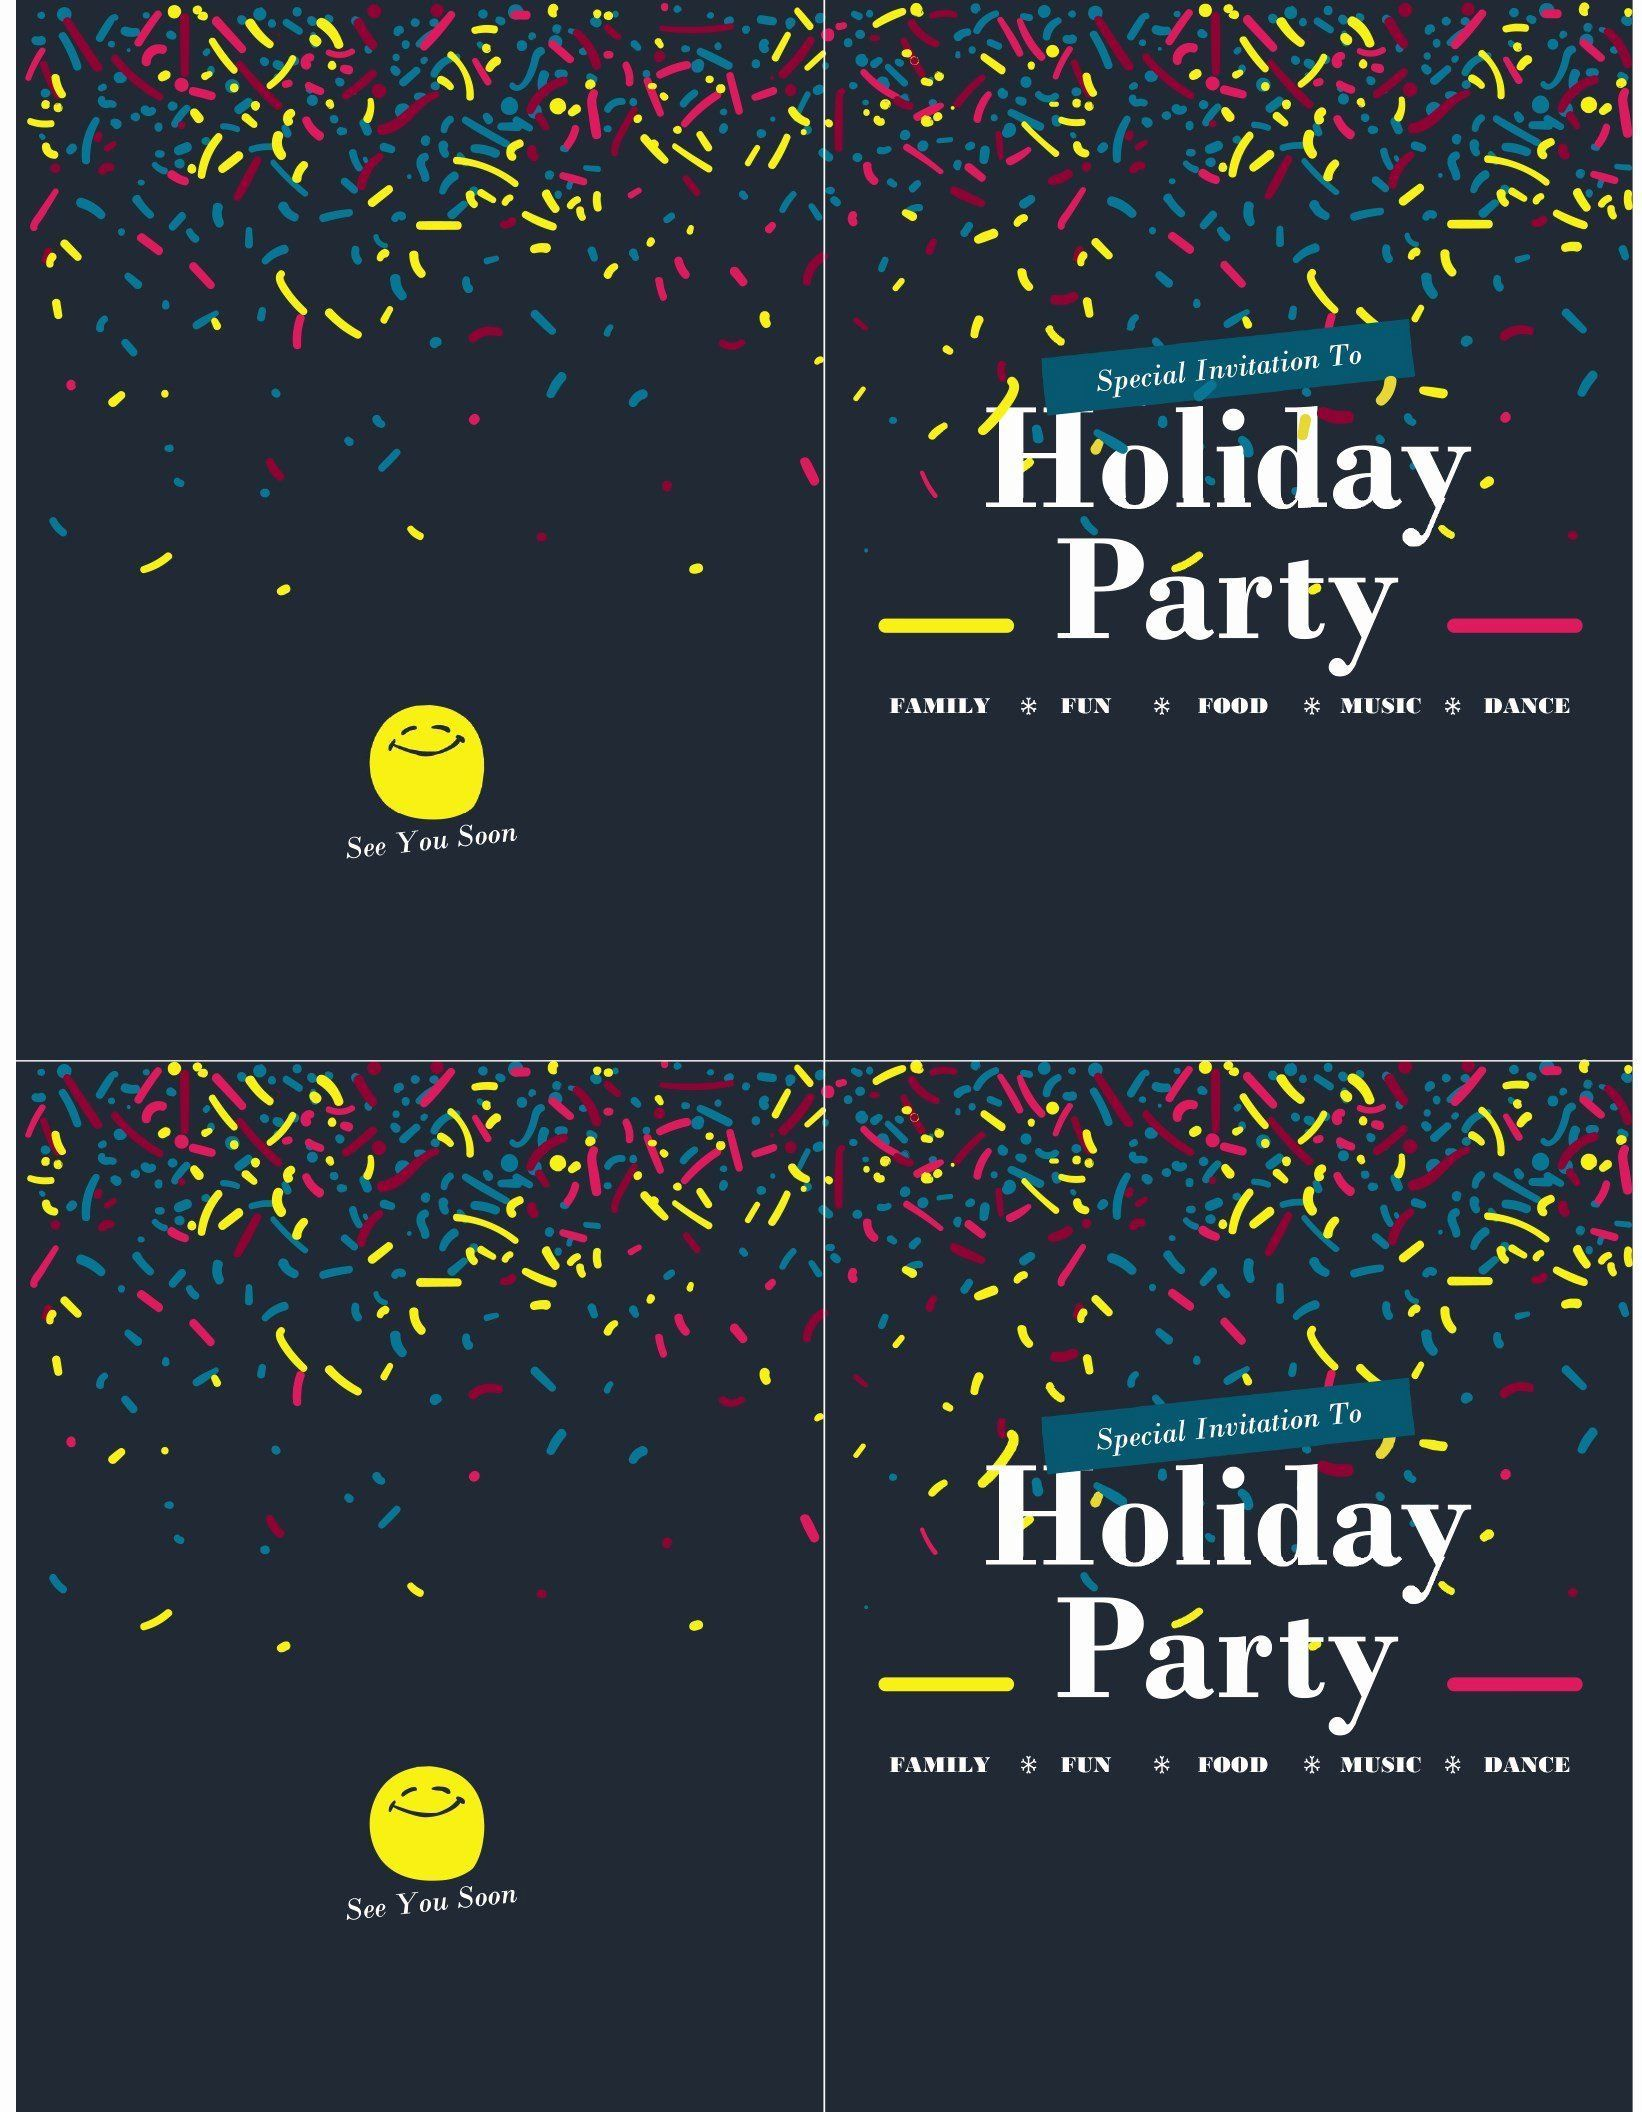 006 Awesome Microsoft Office Invitation Template Picture  Templates Holiday Party PublisherFull